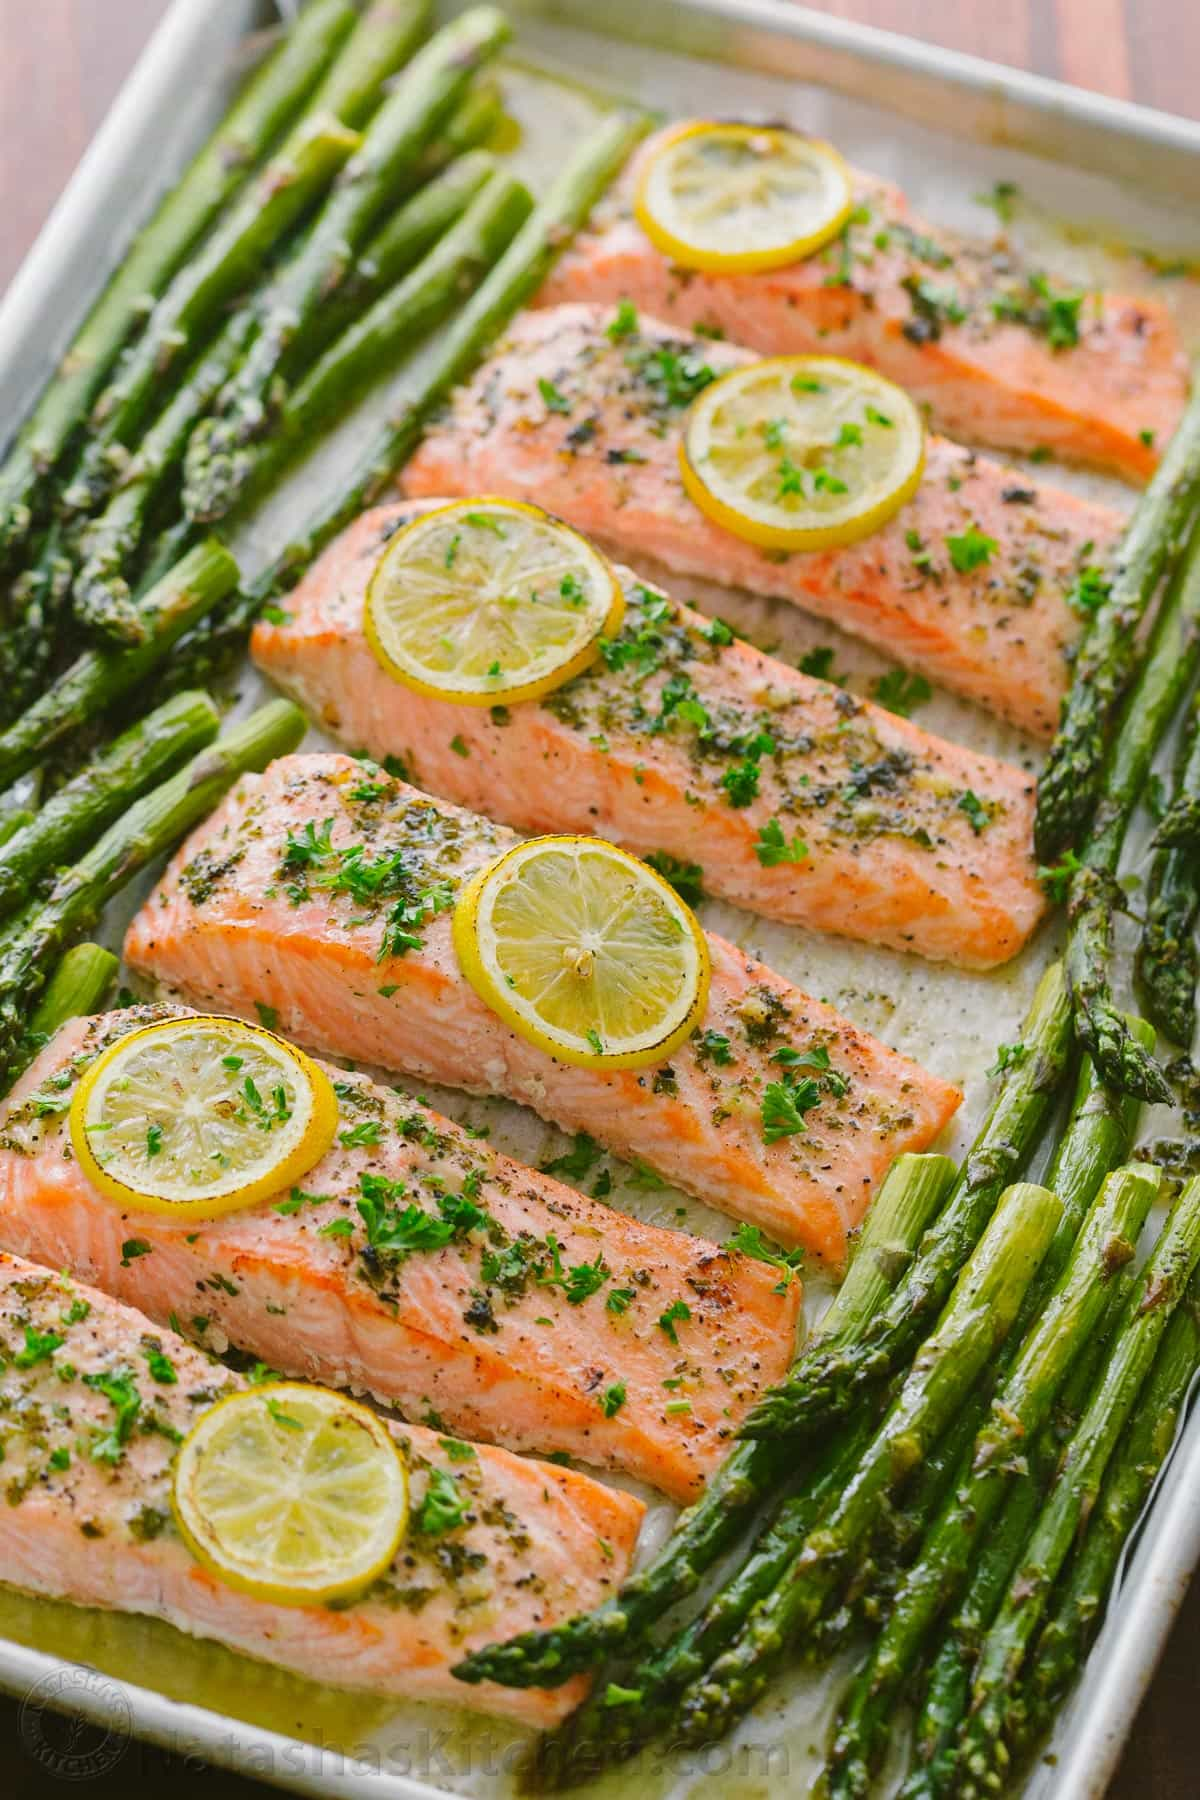 SALMON, ASPARAGUS, & BROCCOLINI - We probably have this meal more often than anything else. The grocery store near our house as a great deal for packs of 2 salmon filets (3 for £10). It's just too easy and too refreshing to resist. We cook the salmon at 200°C for about 20 minutes with lemon, salt, pepper, and sometimes dill. We do the vegetables on the stovetop with oil or butter, lemon, salt, and pepper. It's great all year, but it's also the perfect al fresco dinner in the summertime.